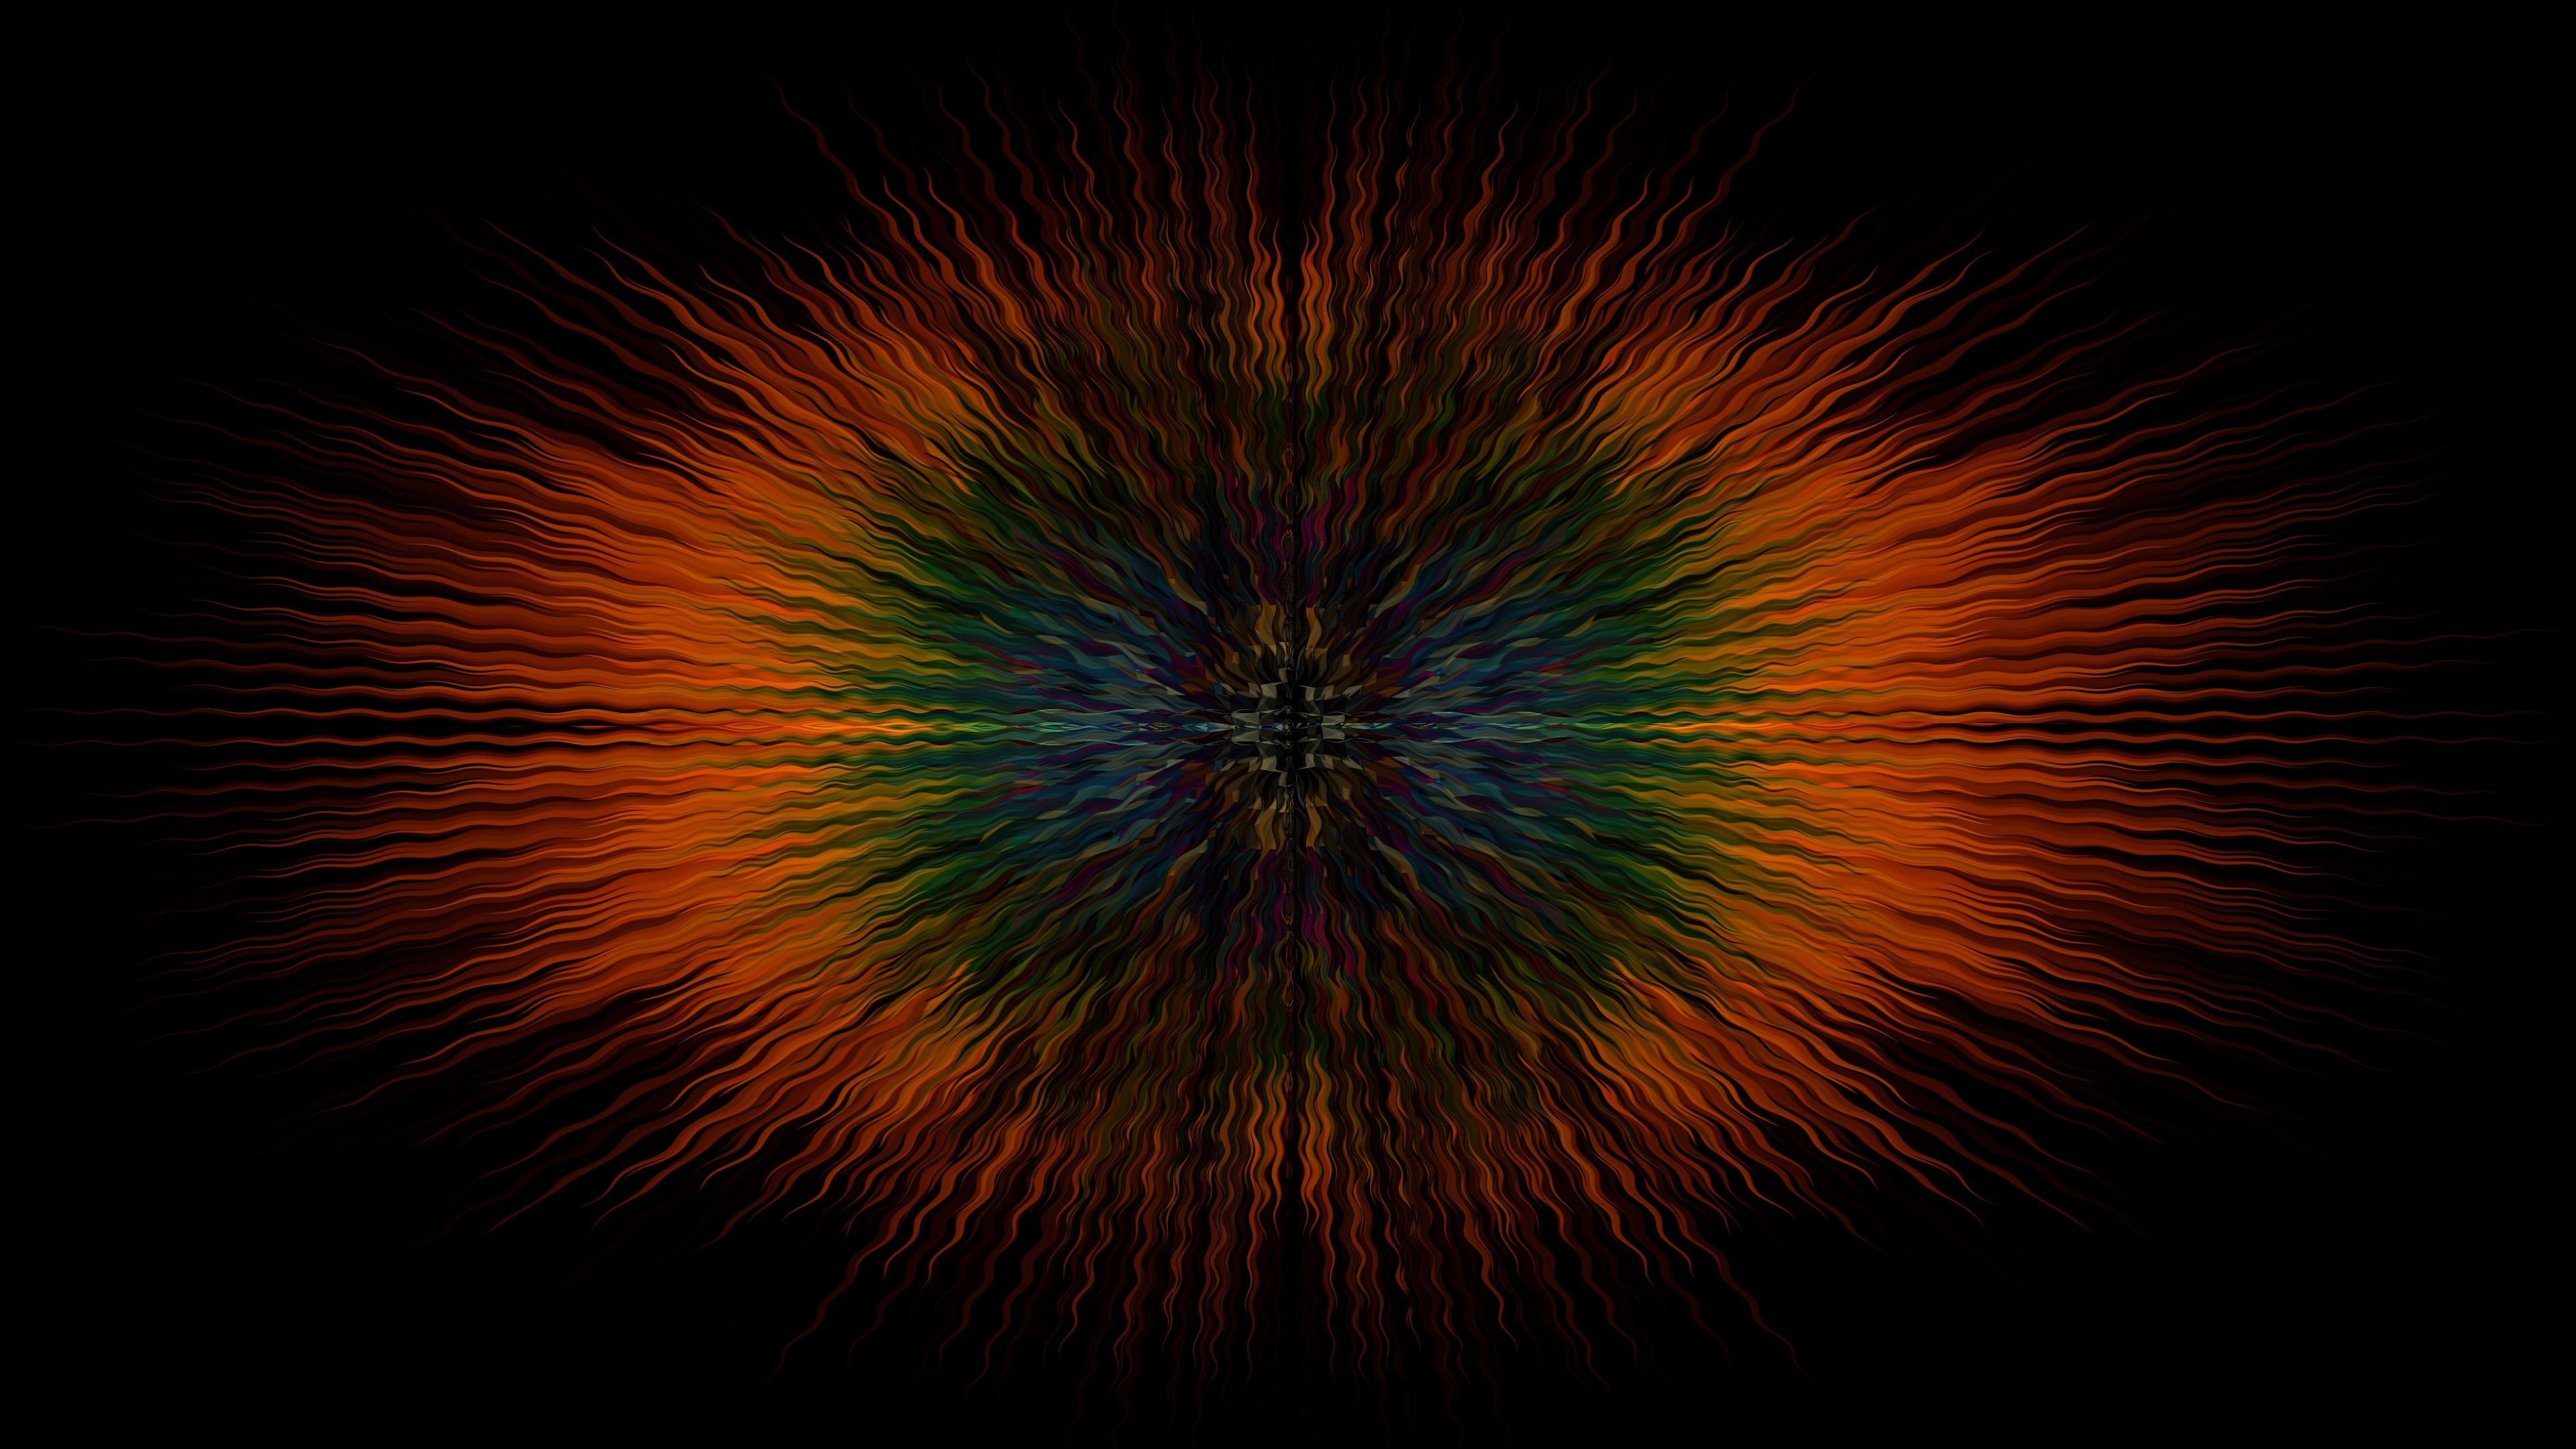 abstract energy 1546277888 - Abstract Energy - hd-wallpapers, digital art wallpapers, artwork wallpapers, artist wallpapers, abstract wallpapers, 4k-wallpapers